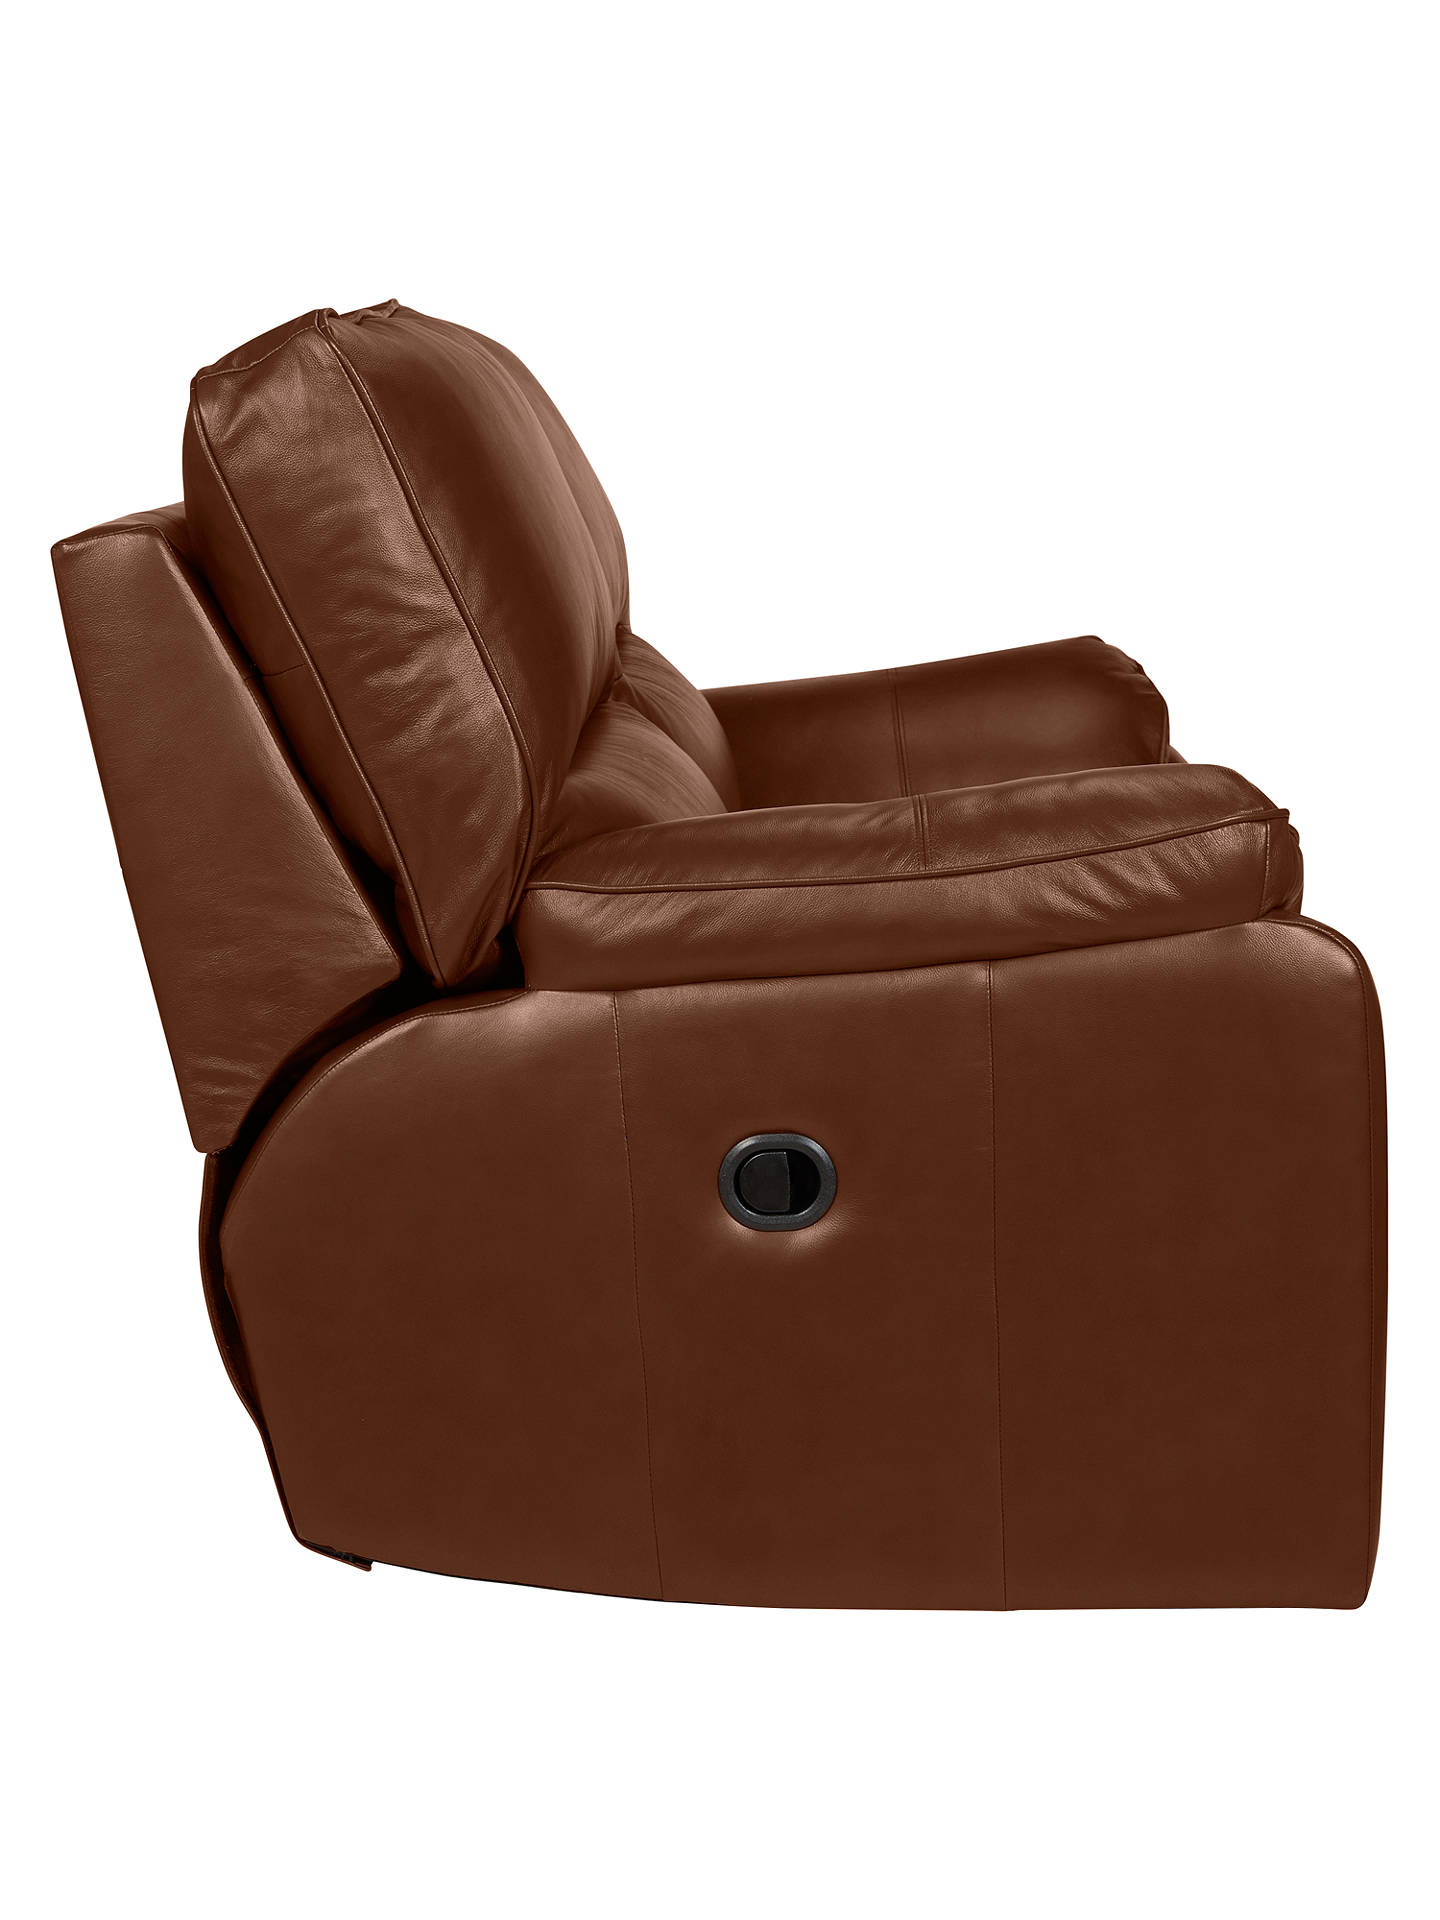 Admirable John Lewis Partners Carlisle Manual Recliner Small 2 Seater Leather Sofa Contempo Castanga Bralicious Painted Fabric Chair Ideas Braliciousco